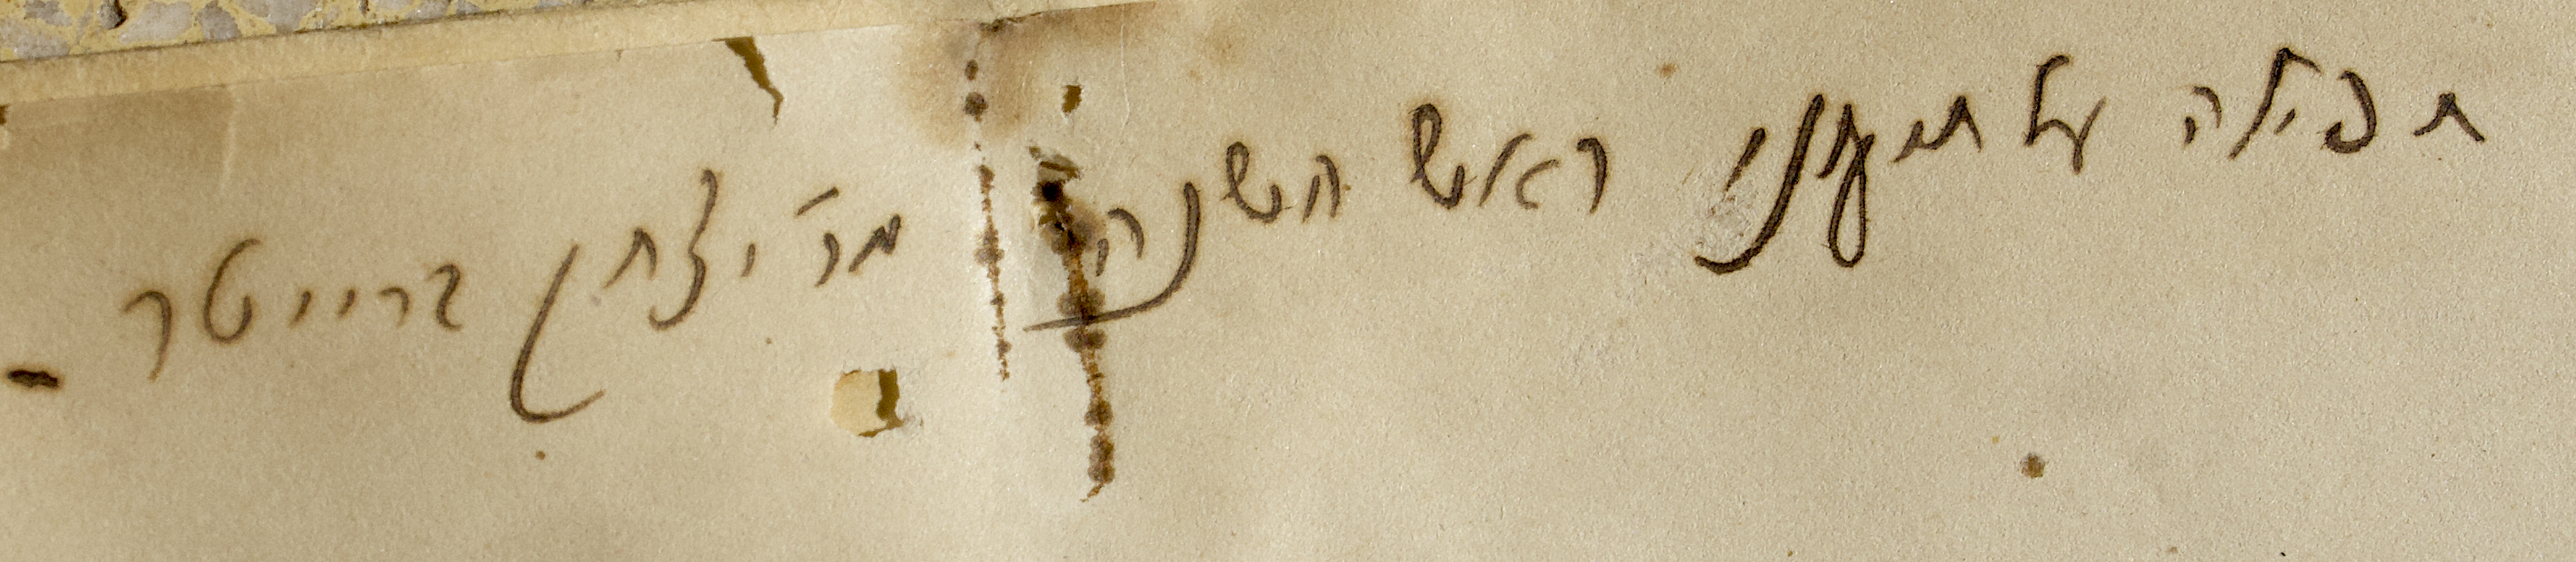 "<p>Korman's hand-writ­ten note, attached to the fold­er con­tain­ing the copy of Brayter's prayer. It reads: <span class=""push-double""></span>​<span class=""pull-double"">""</span>Prayer Regard­ing the Rec­ti­fi­ca­tions of Rosh Hashana, of R. Yit­shok Brayter."" The Schock­en Insti­tute for Jew­ish Research,&nbsp;Jerusalem.</p>"